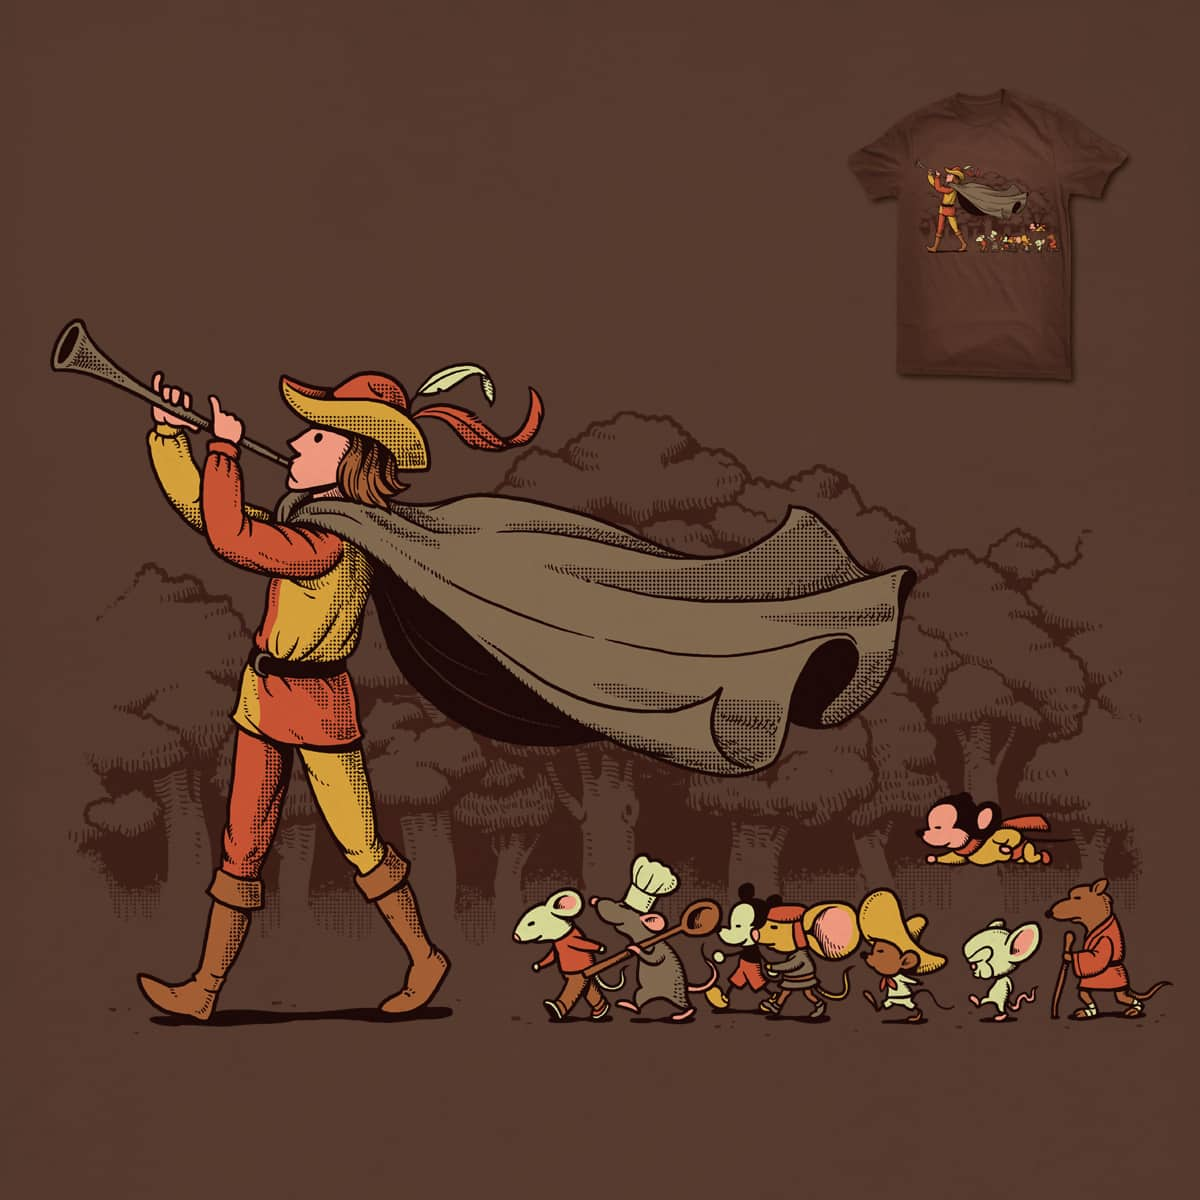 Follow the Flute by ben chen on Threadless